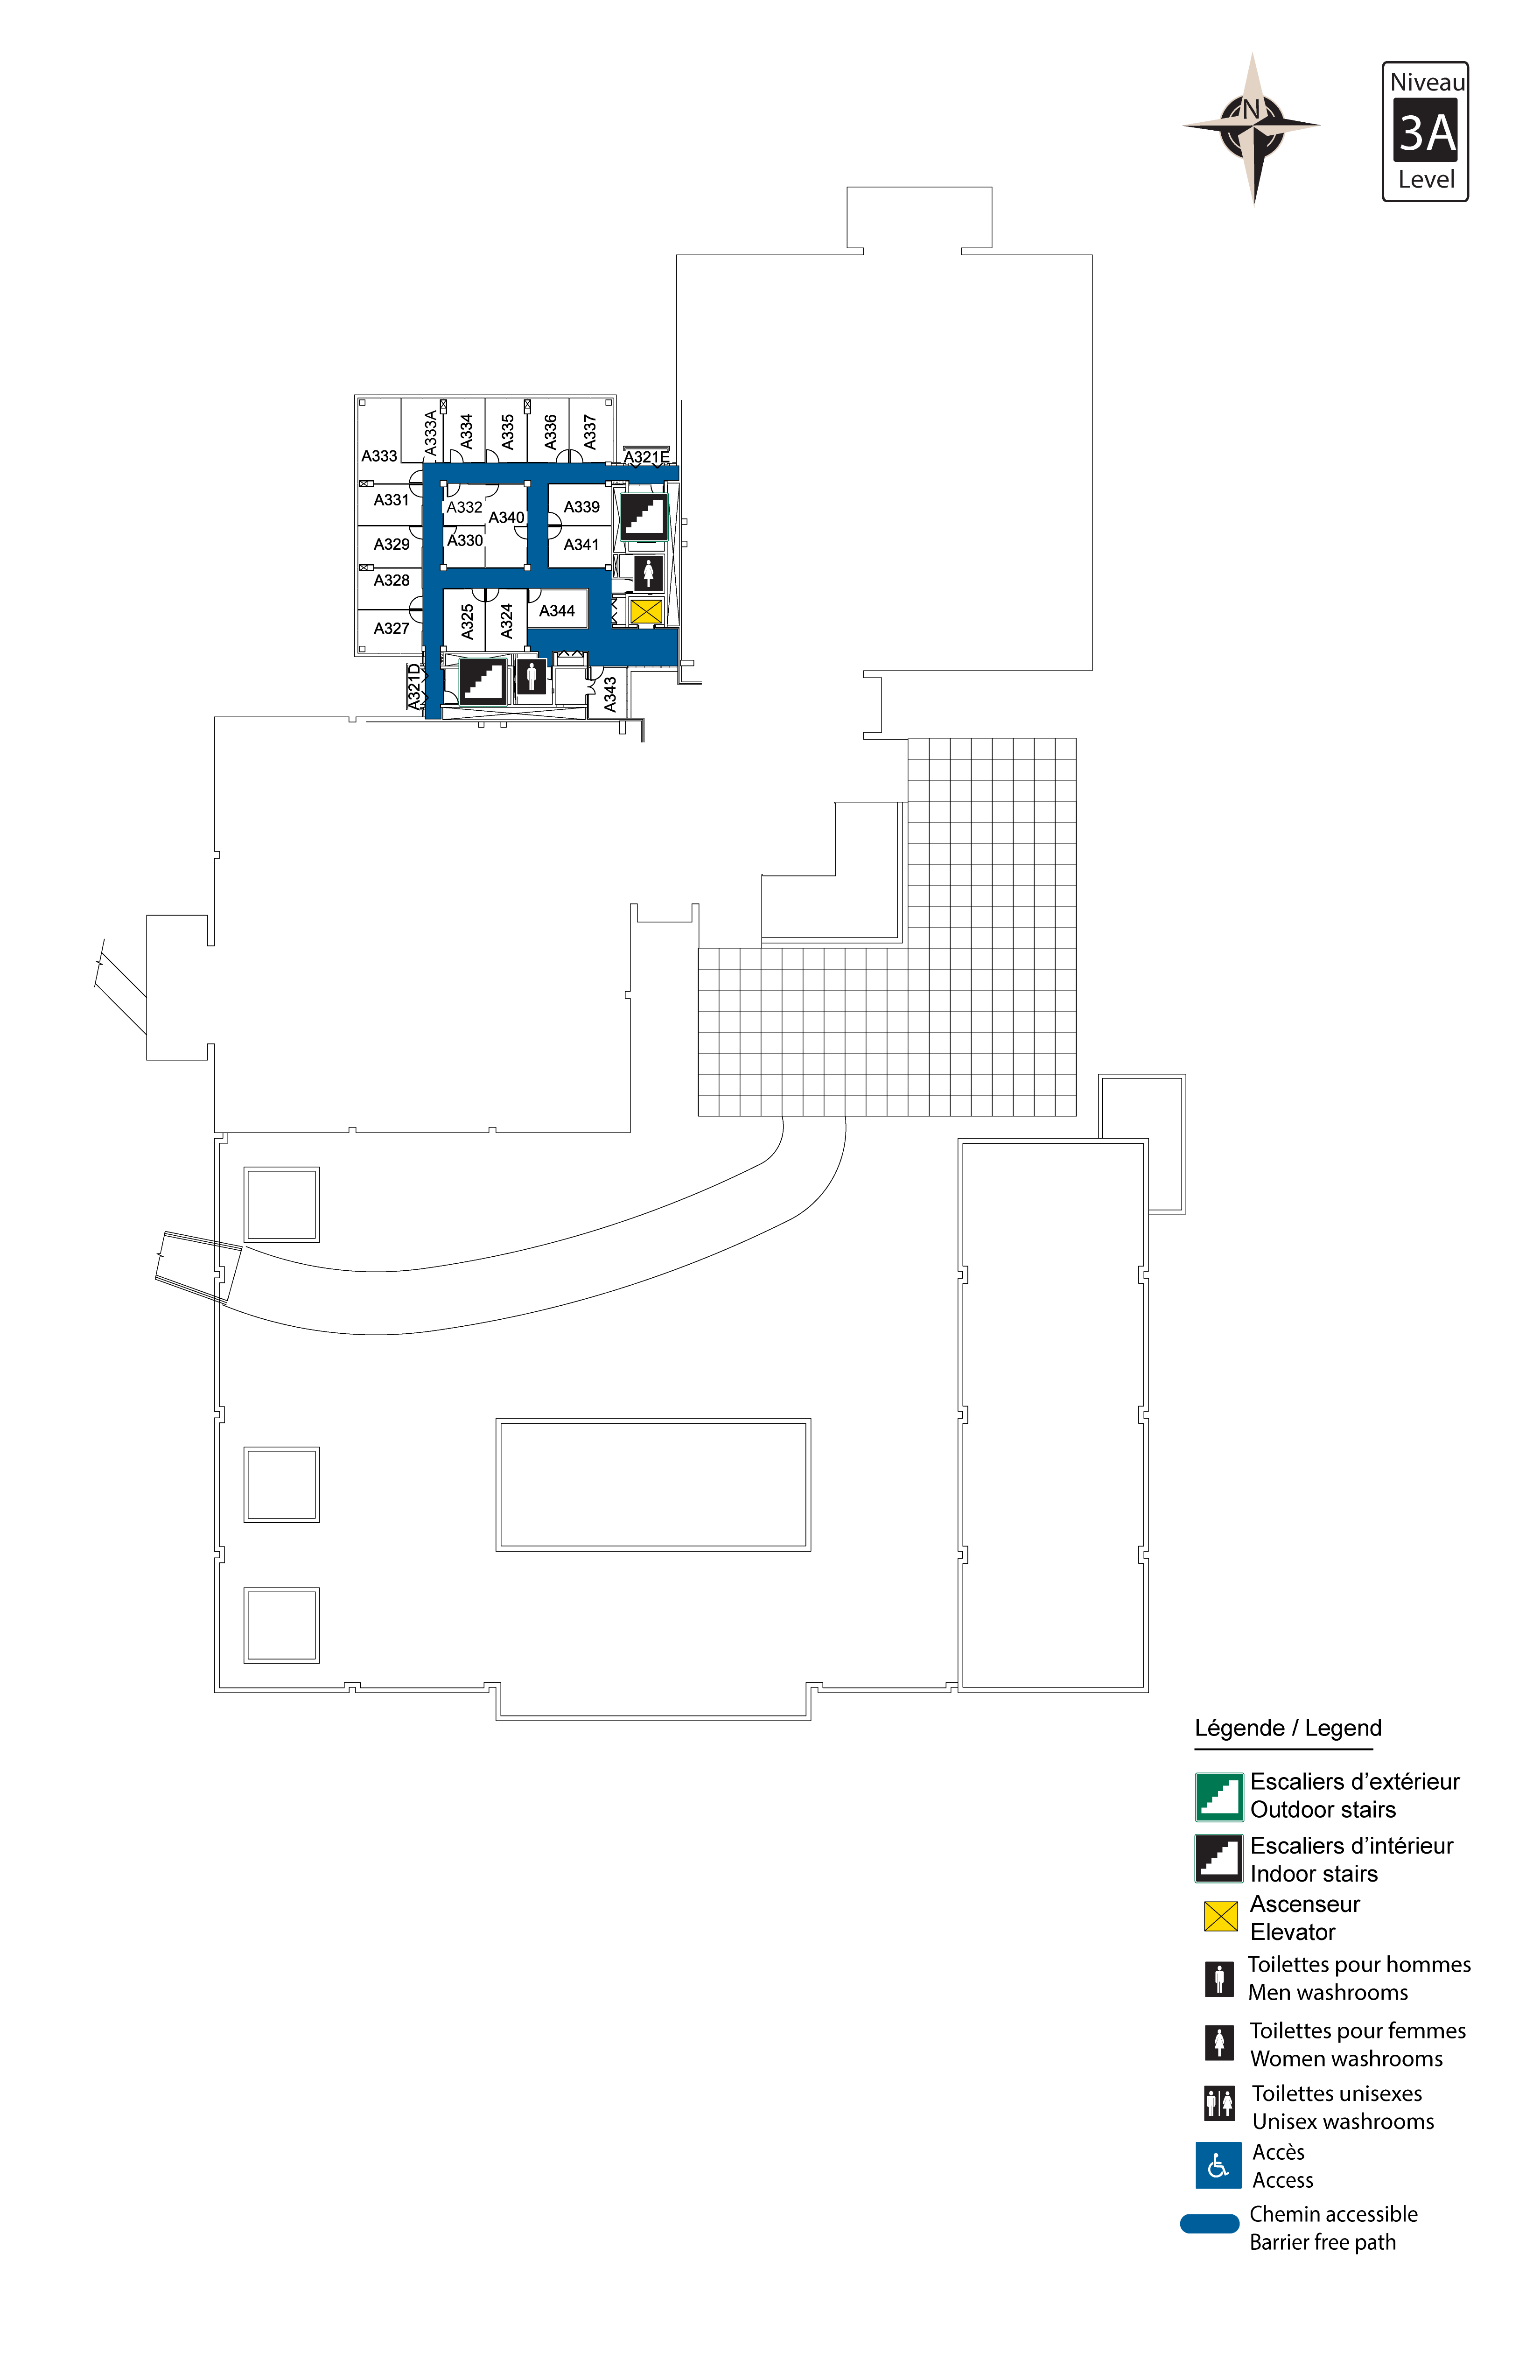 Accessible map - Cby 3a